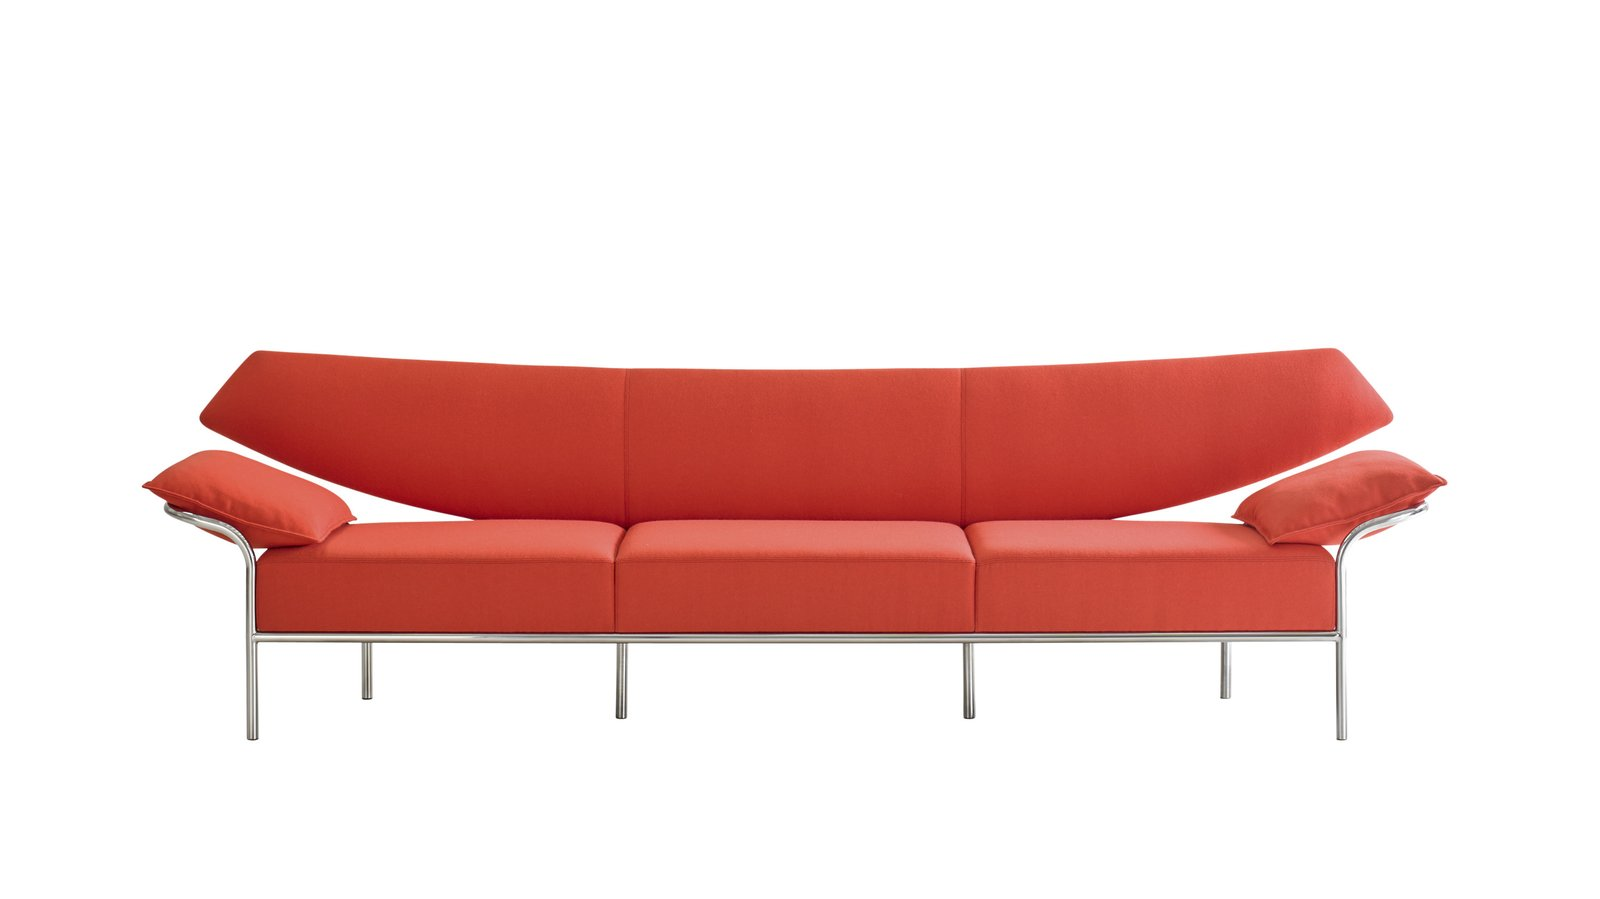 Ibis sofa (2017) Bernhardt As a result of a surprising career move, actor Terry Crews partnered with Jerry Helling, president and creative director of North Carolina–based Bernhardt, to bring his first furniture line to market, which includes Ibis, a sofa with a form inspired by Egyptian hieroglyphics.